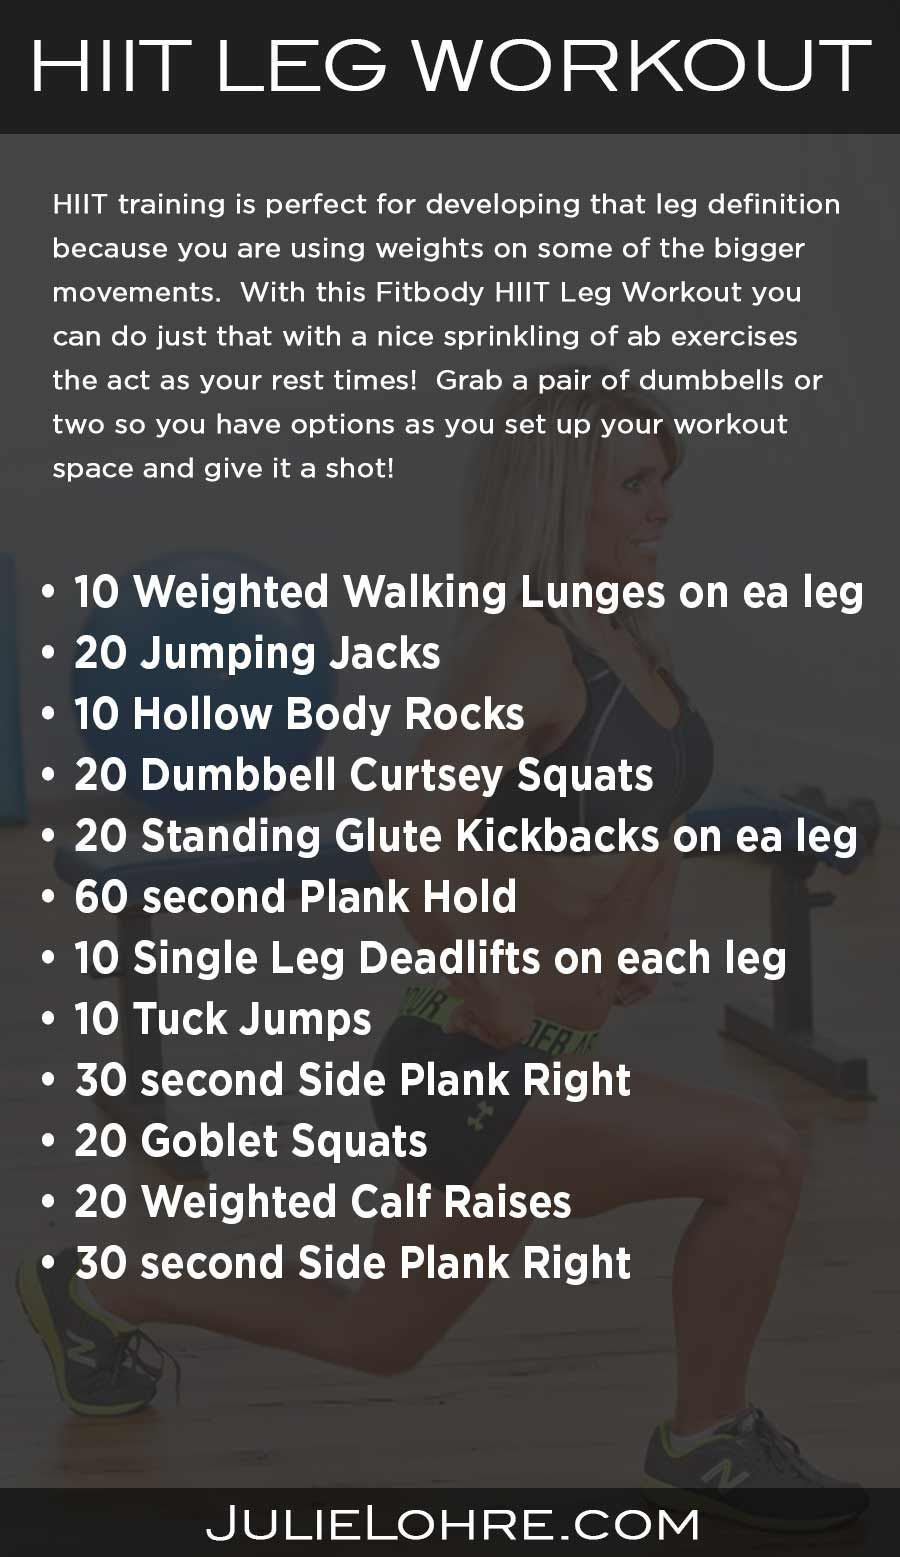 HIIT Workouts for Women | Hiit leg workout, Interval ...